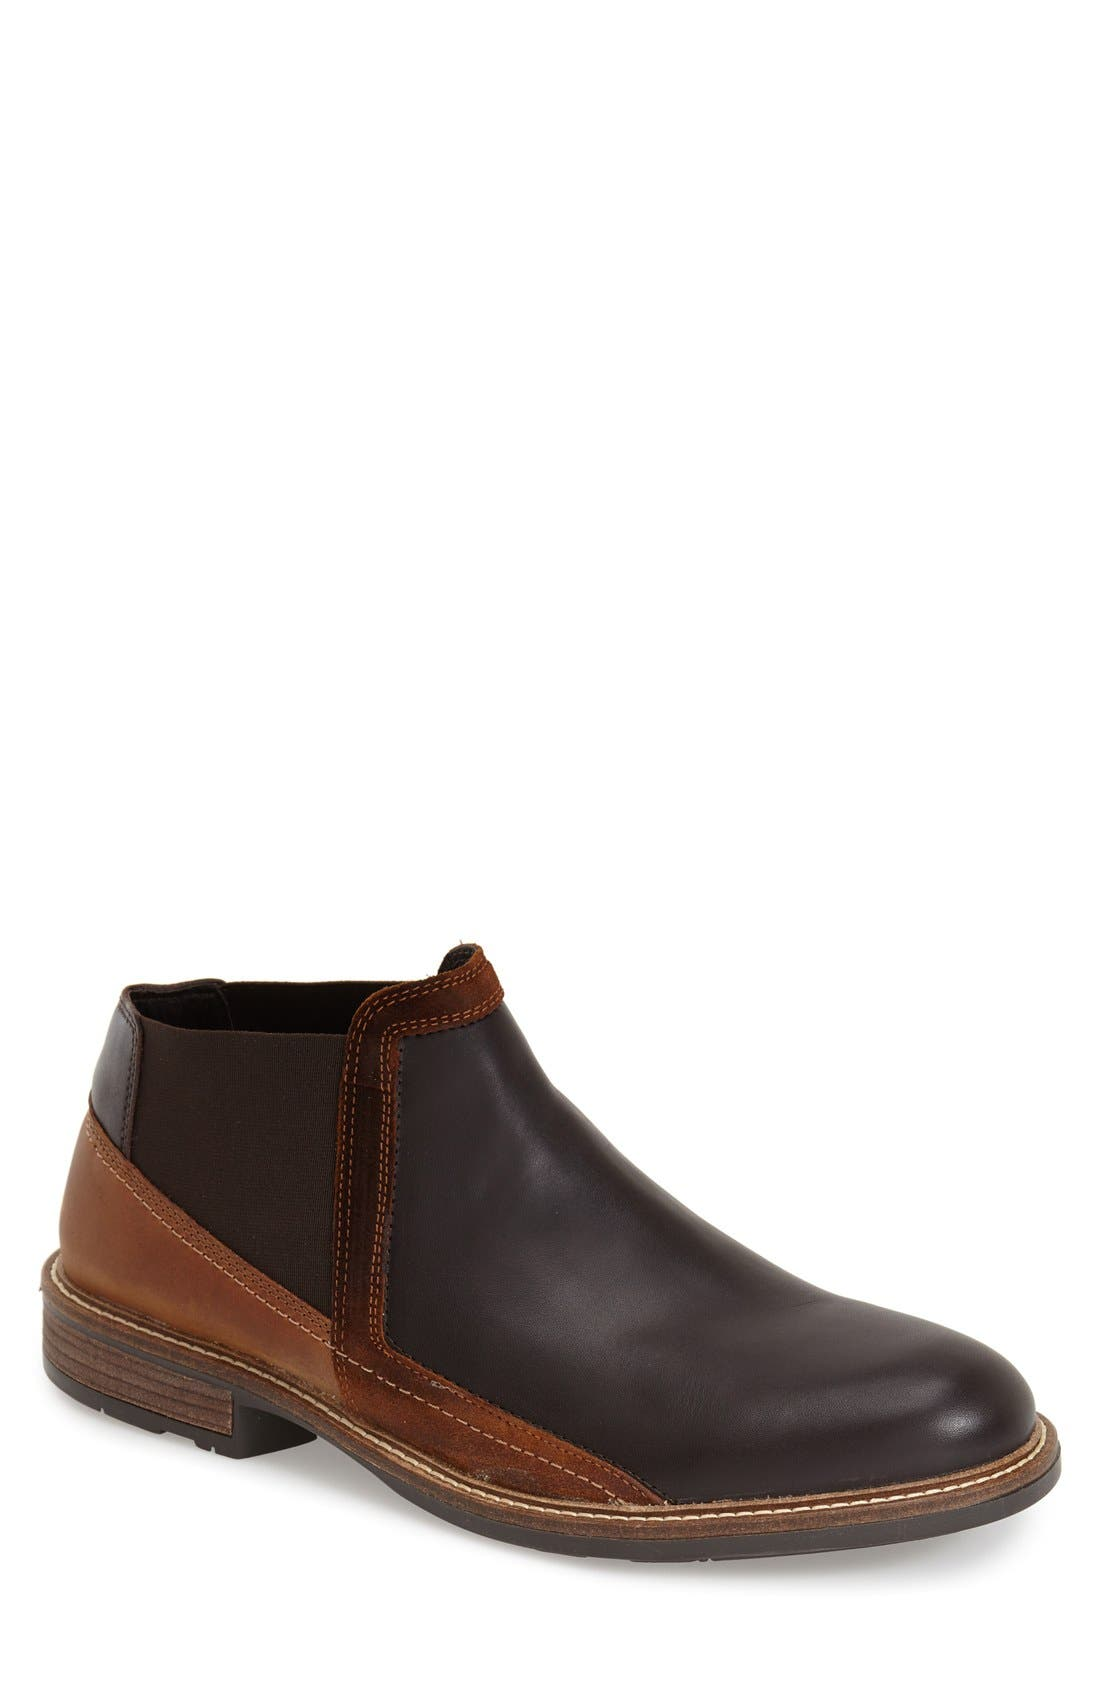 Business Chelsea Boot,                         Main,                         color, ROAST/SADDLE/ SEAL BROWN SUEDE